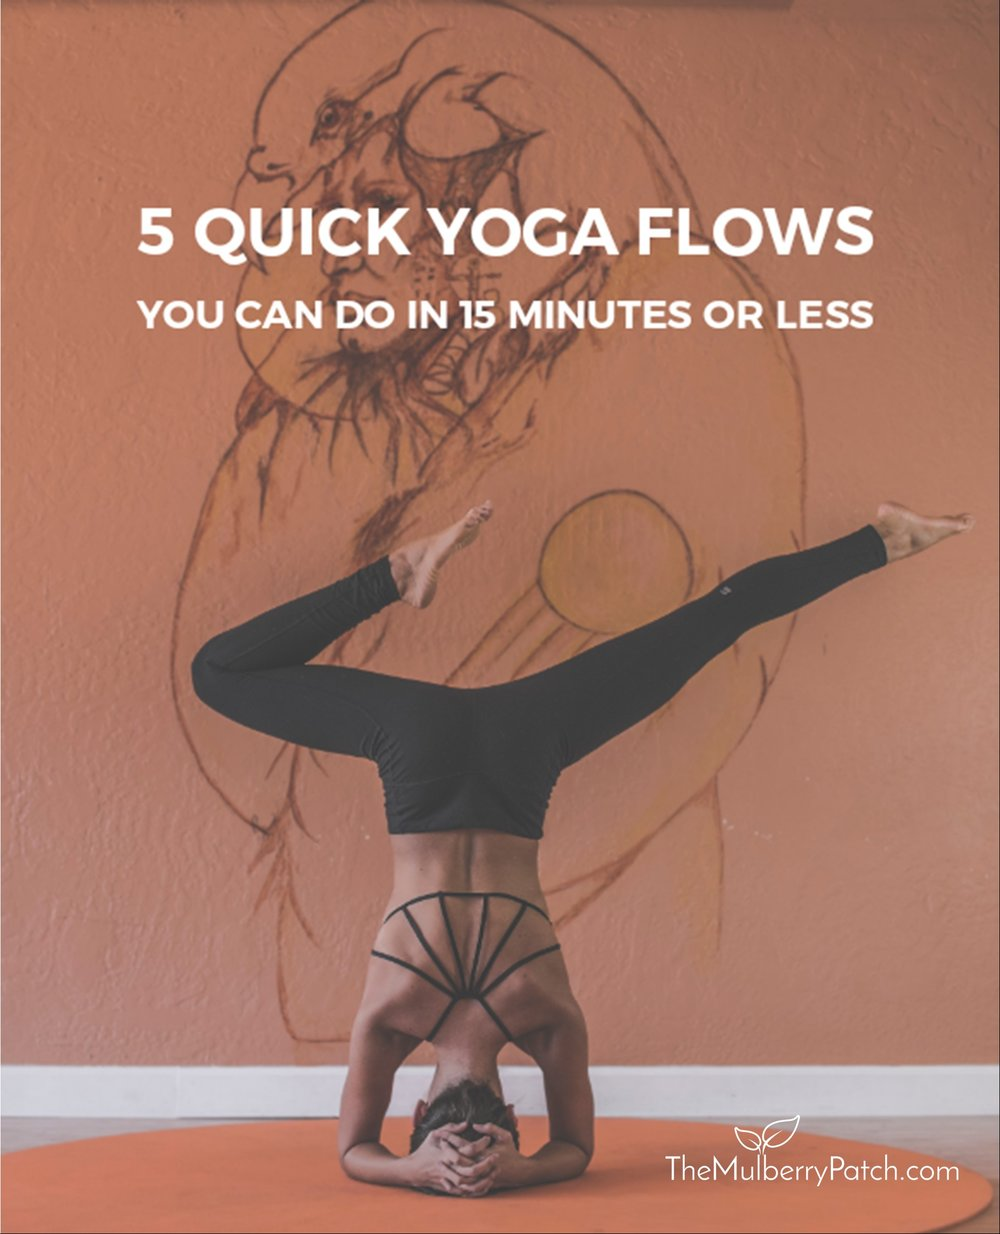 5 quick yoga flows in 15 minutes or less.jpg